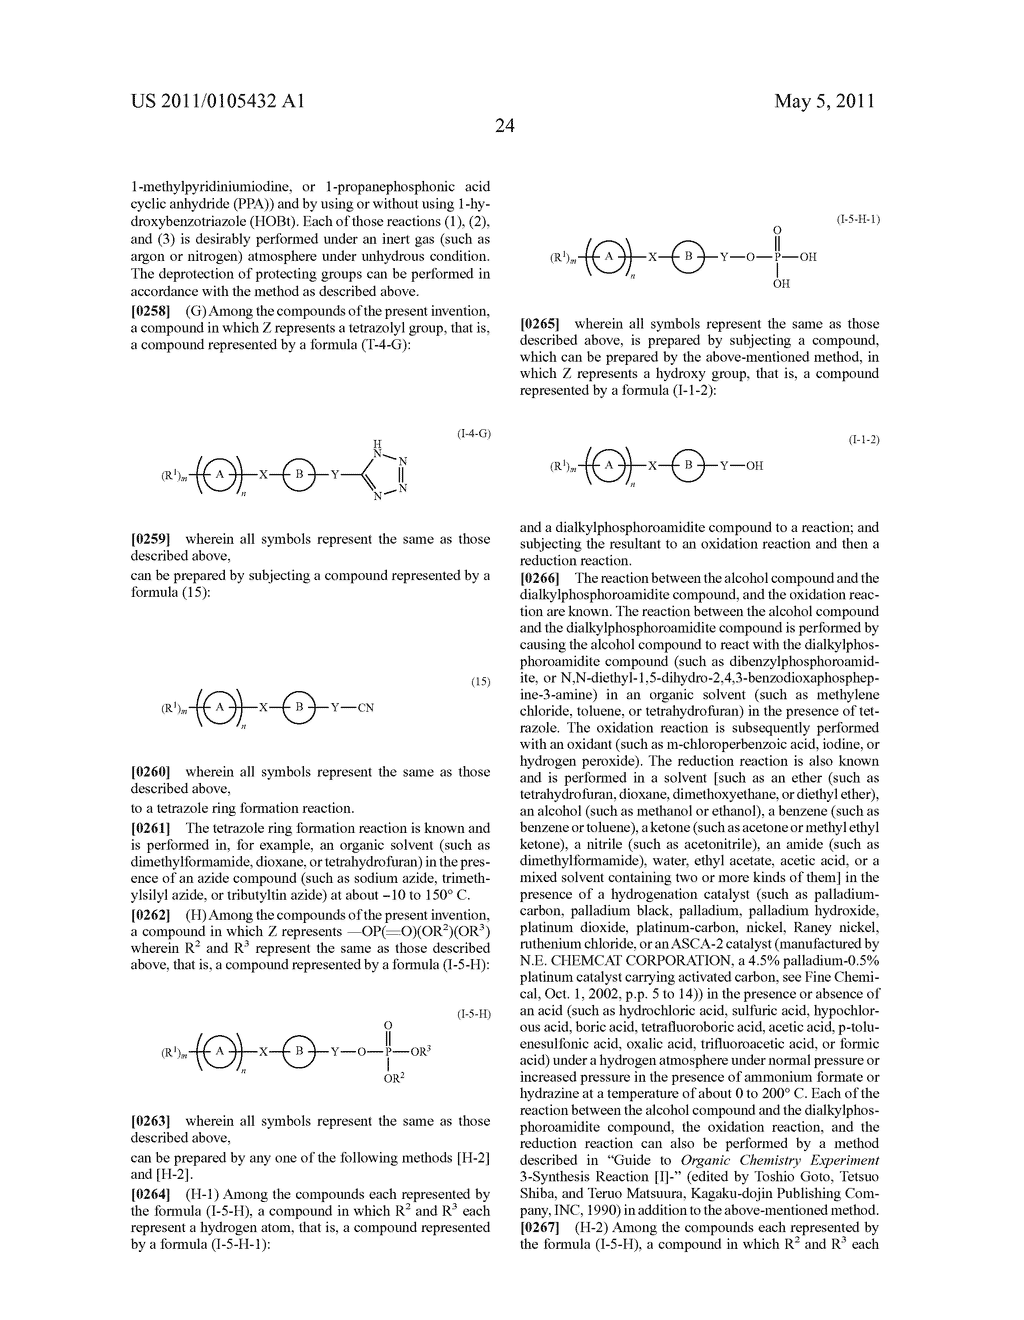 AMINOCARBOXYLIC ACID DERIVATIVE AND MEDICINAL USE THEREOF - diagram, schematic, and image 35